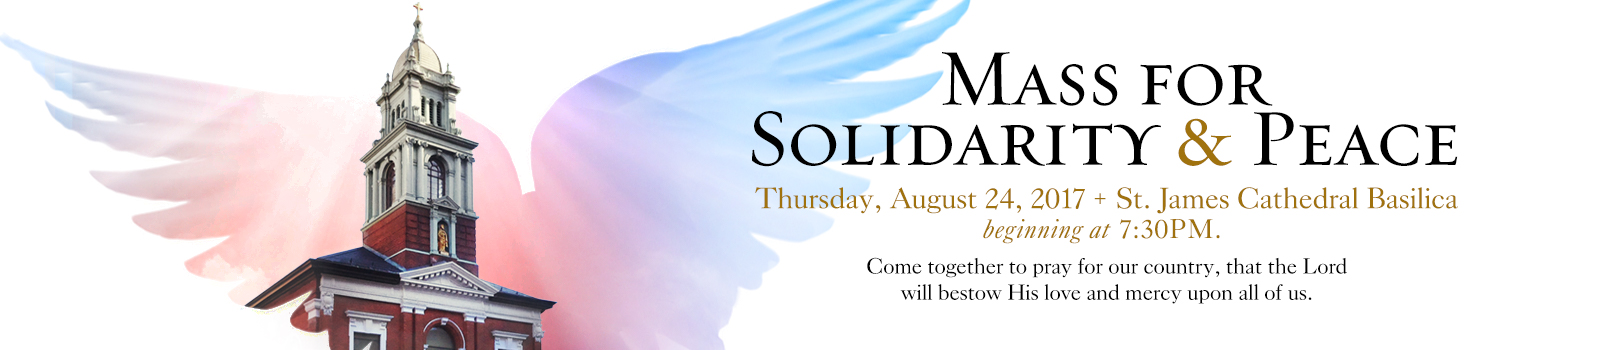 Mass for Solidarity and Peace